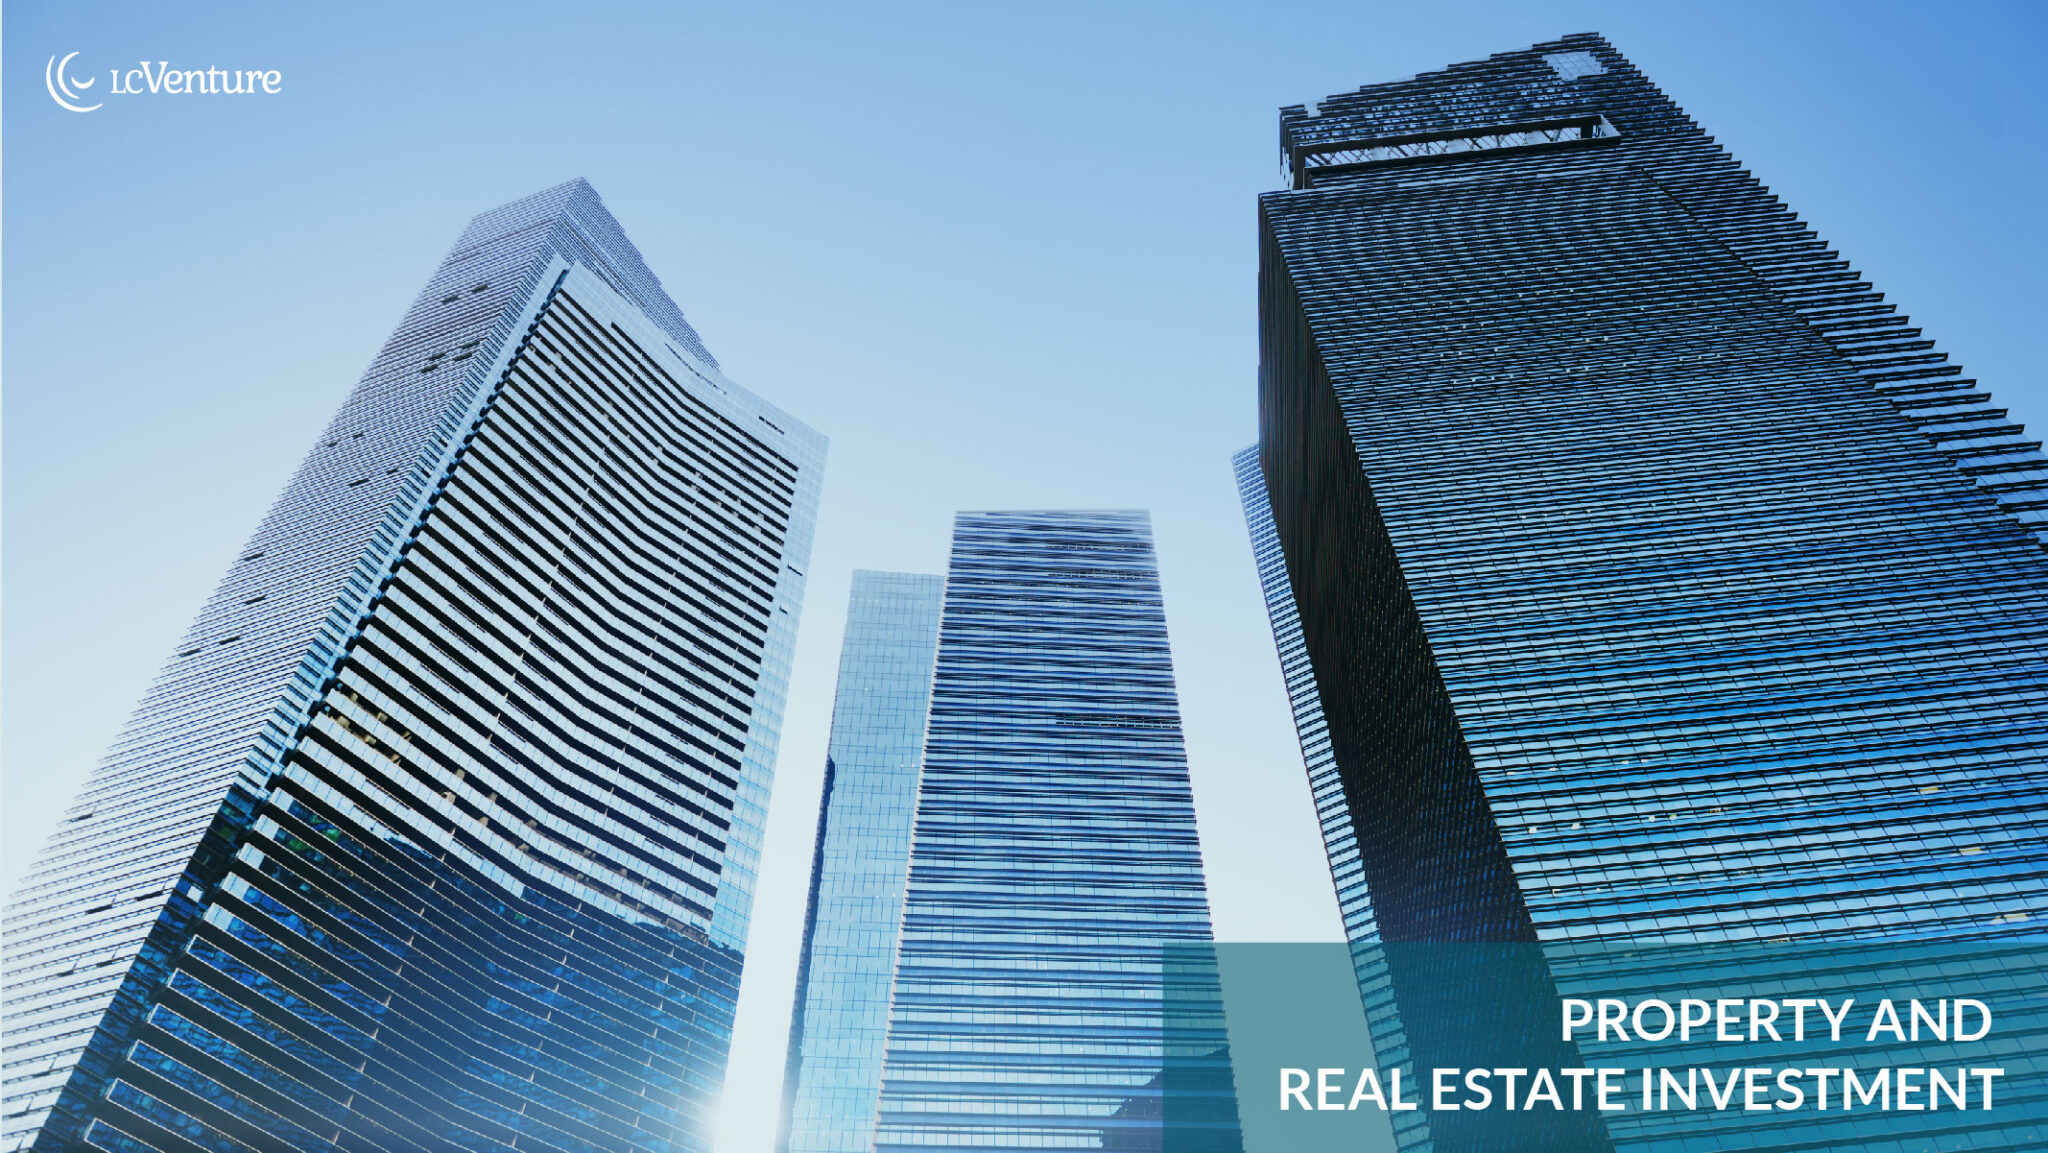 LC Venture Property Real Estate Investment